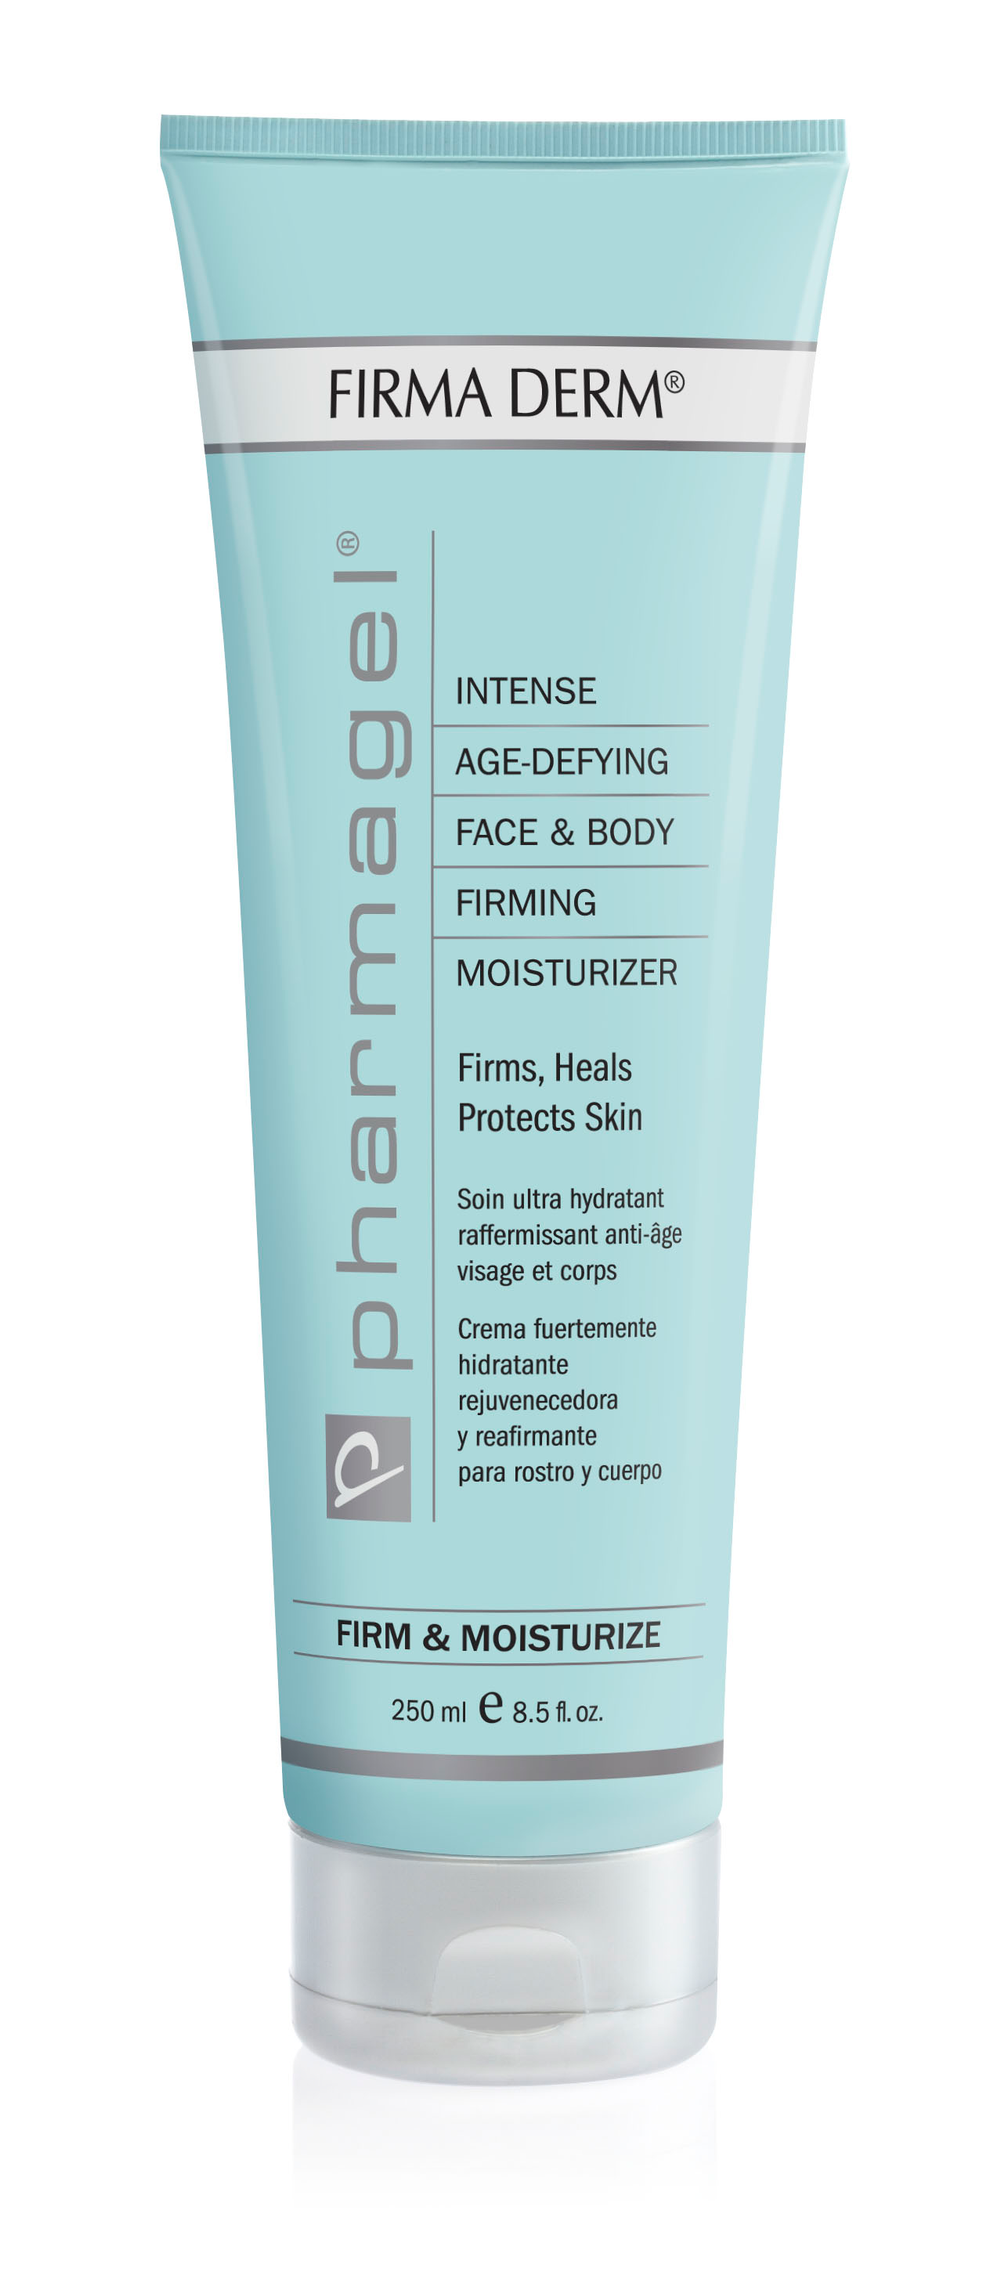 FIRMA DERM  A fast-acting, anti-aging, firming hand and all over body moisturizer that repairs and reverses skin damage. FIRMA DERM contains 750,000 i.u. of Retinol-A, plus Vitamins C and E and Gingko Biloba Extract for fast penetration and intense firming benefits. The high concentration of antioxidants in FIRMA DERM improves elasticity and shields tissues from destructive free radicals. These free radicals interfere with the skin's normal growth patterns, causing wrinkling and premature aging. FIRMA DERM gives skin a younger, smoother, firmer look.